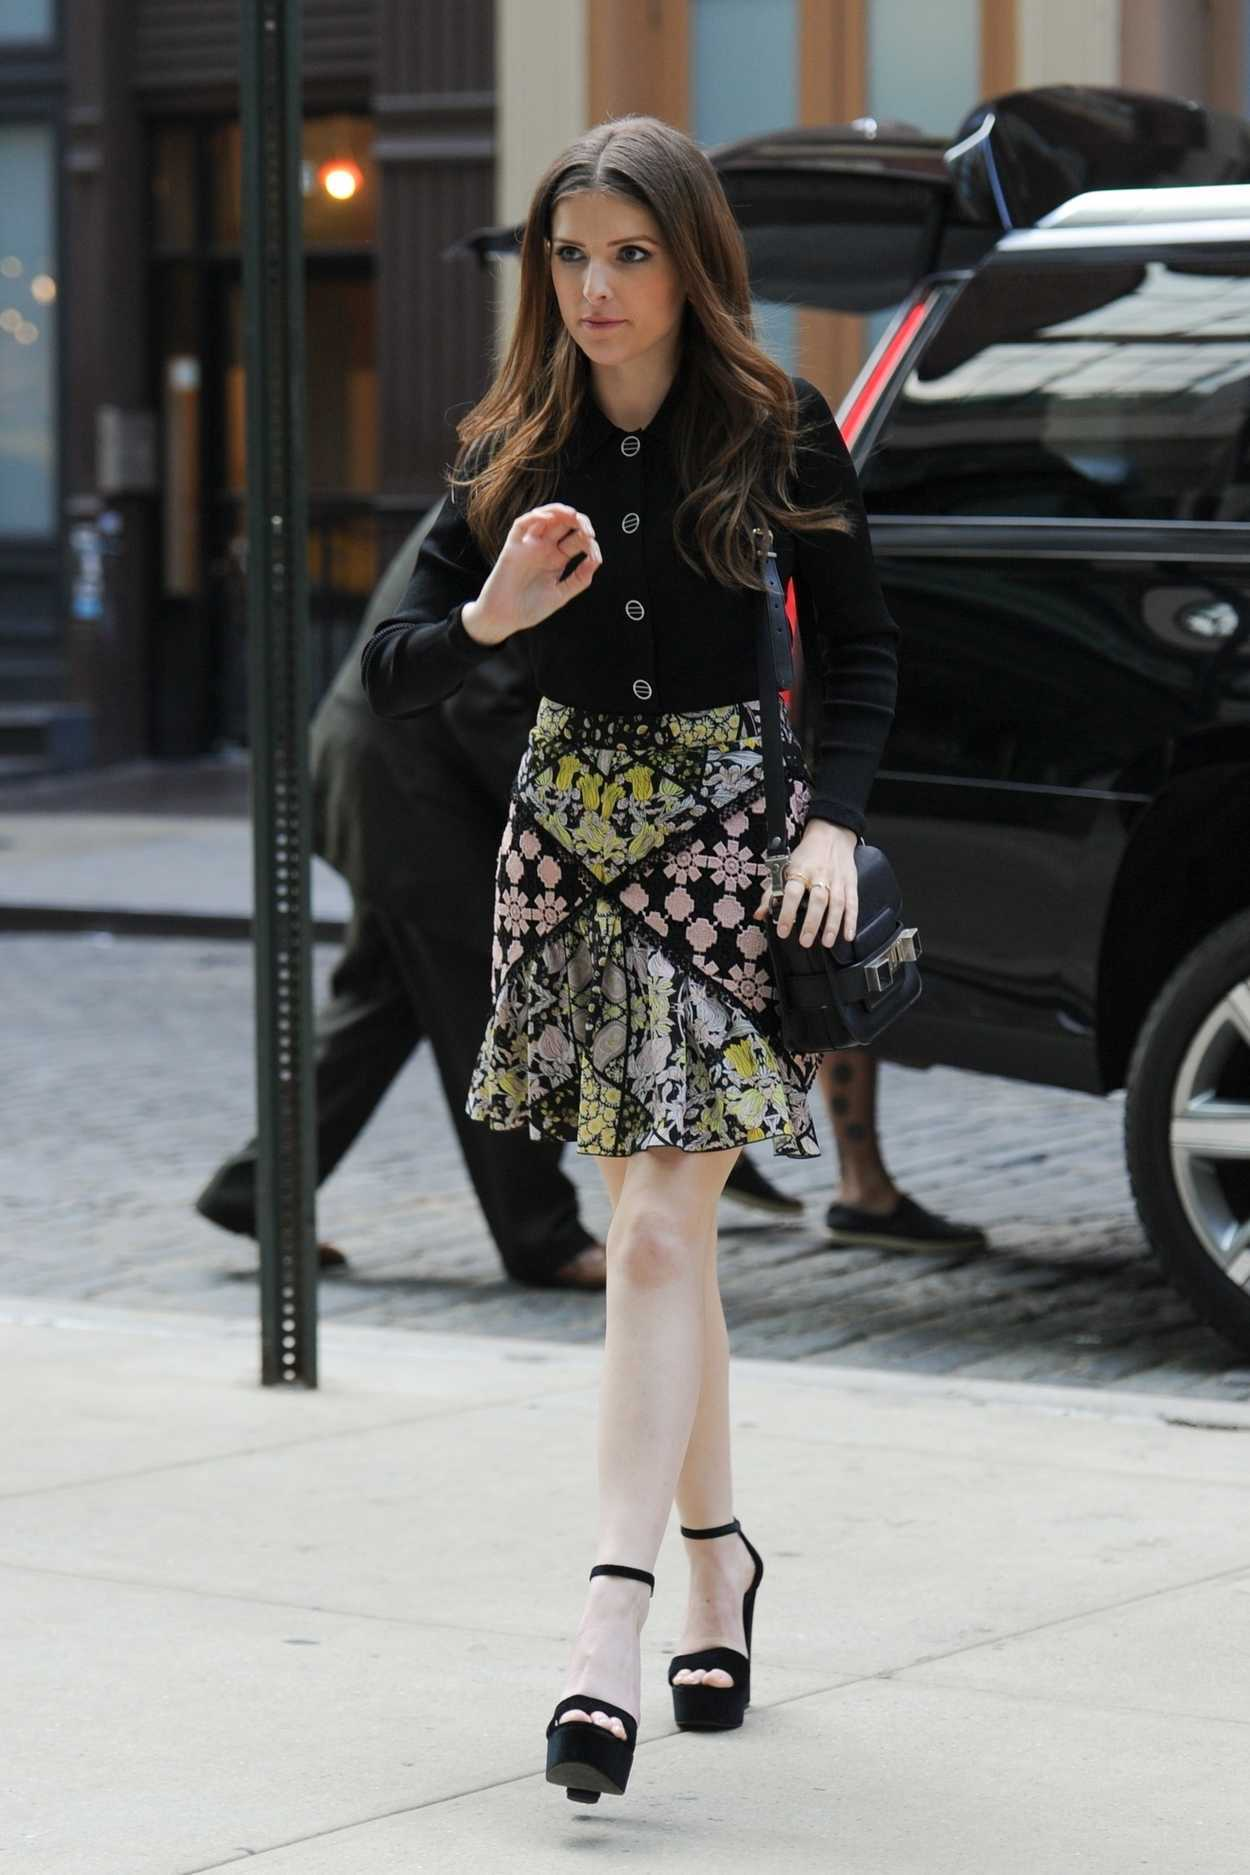 Anna Kendrick in a Short Floral Skirt Arrives at New York